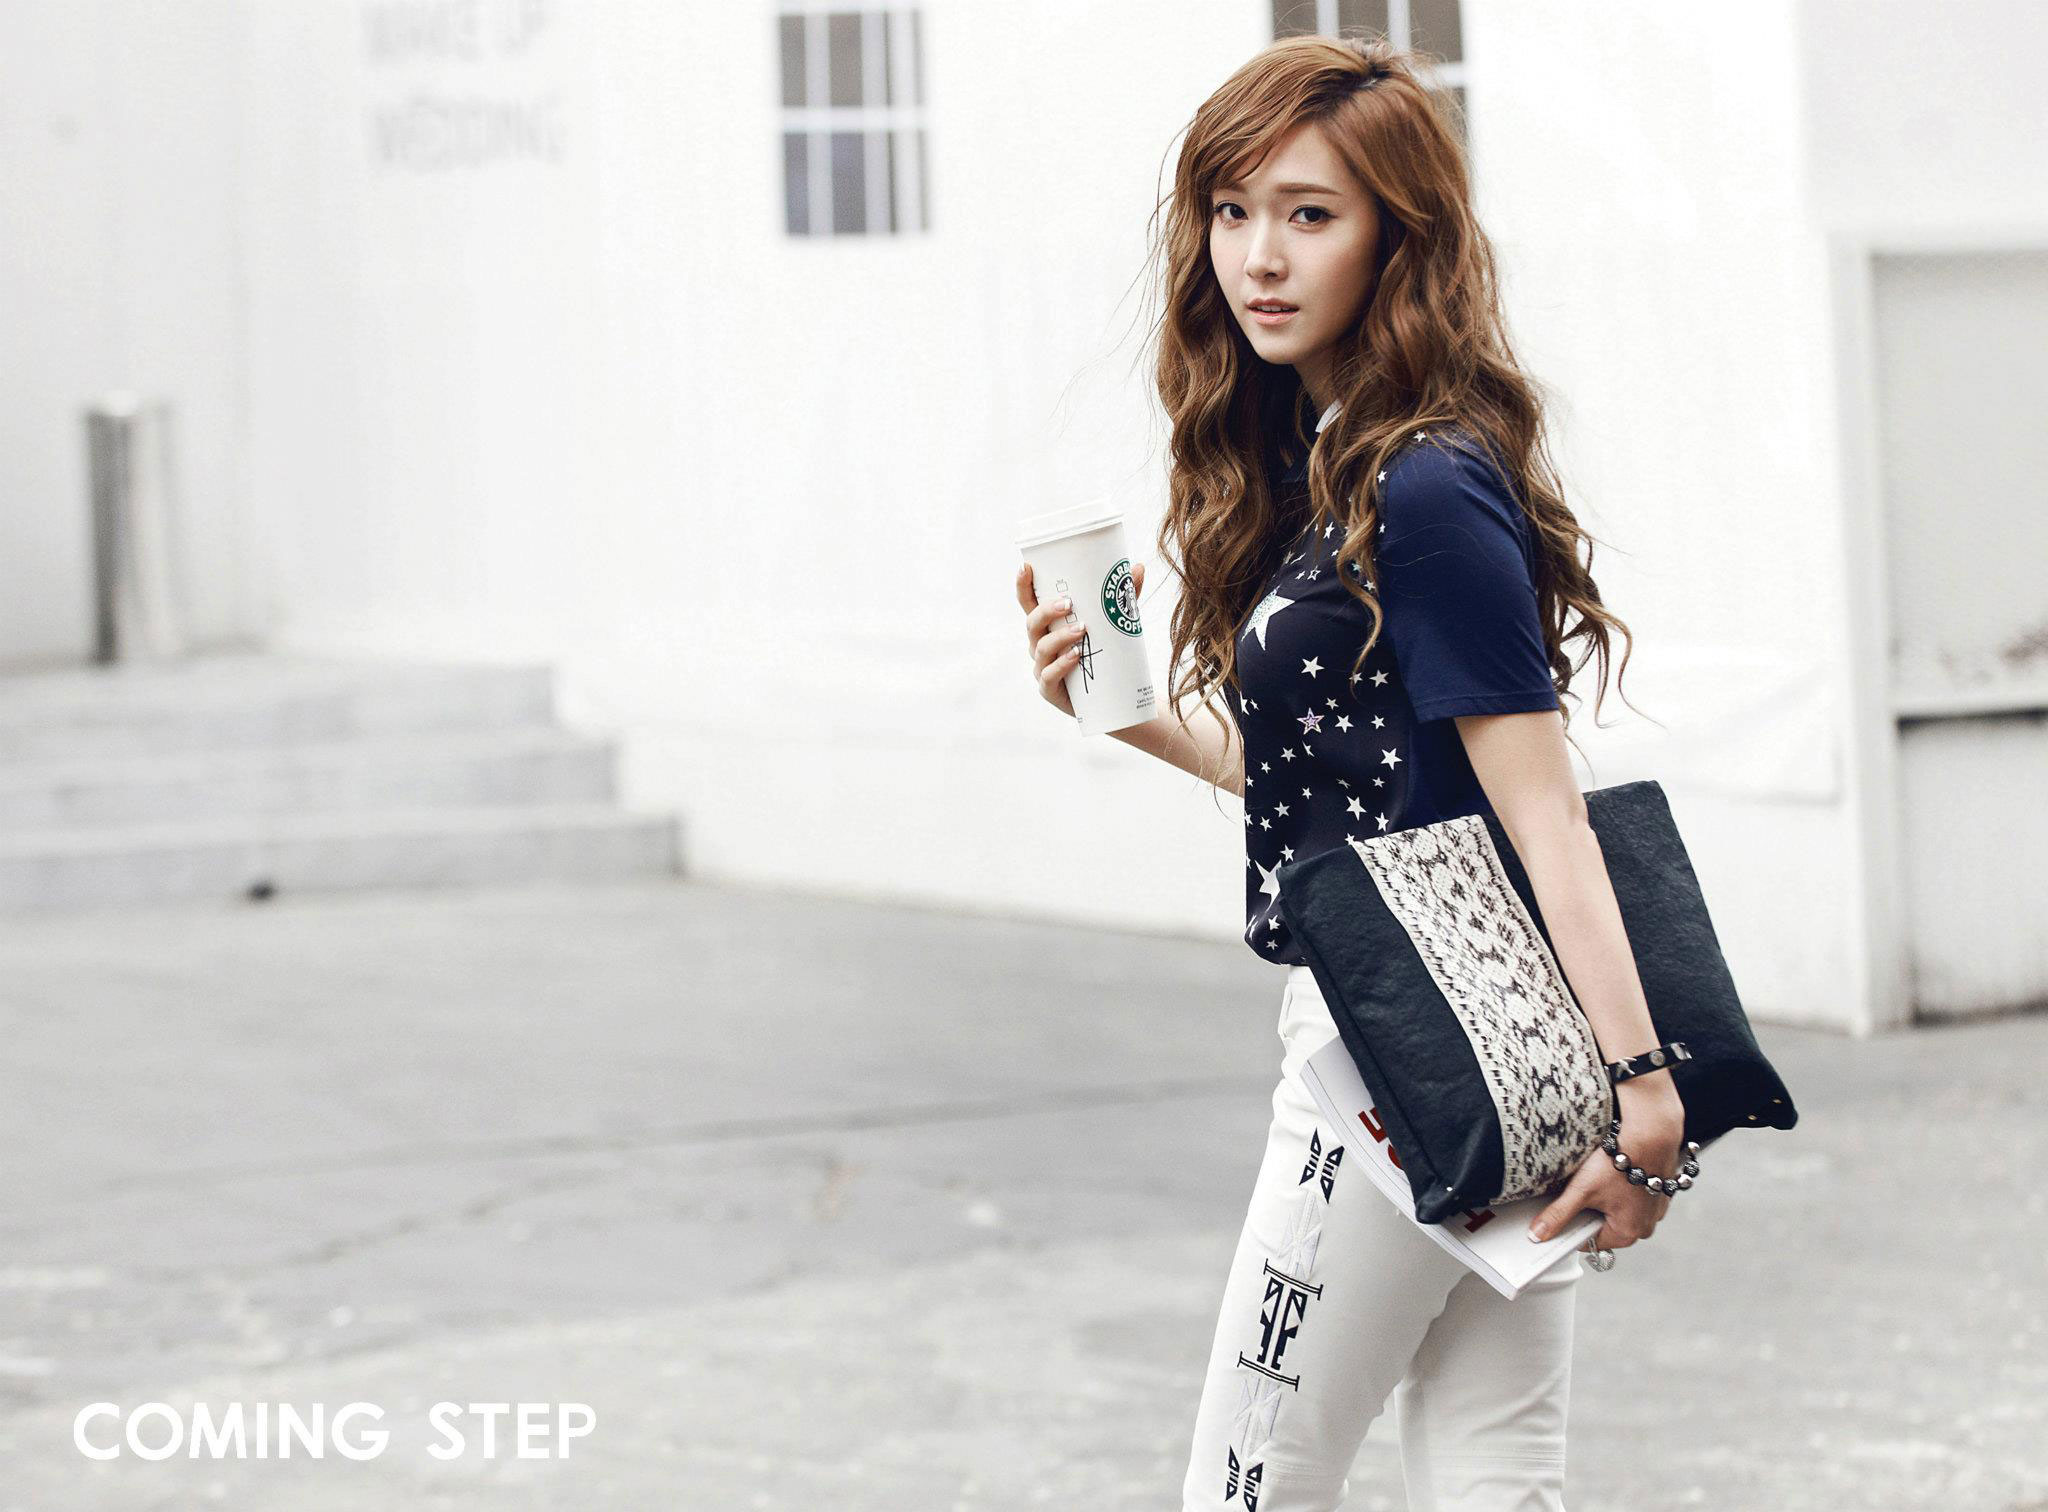 SNSD Jessica Coming Step wallpaper